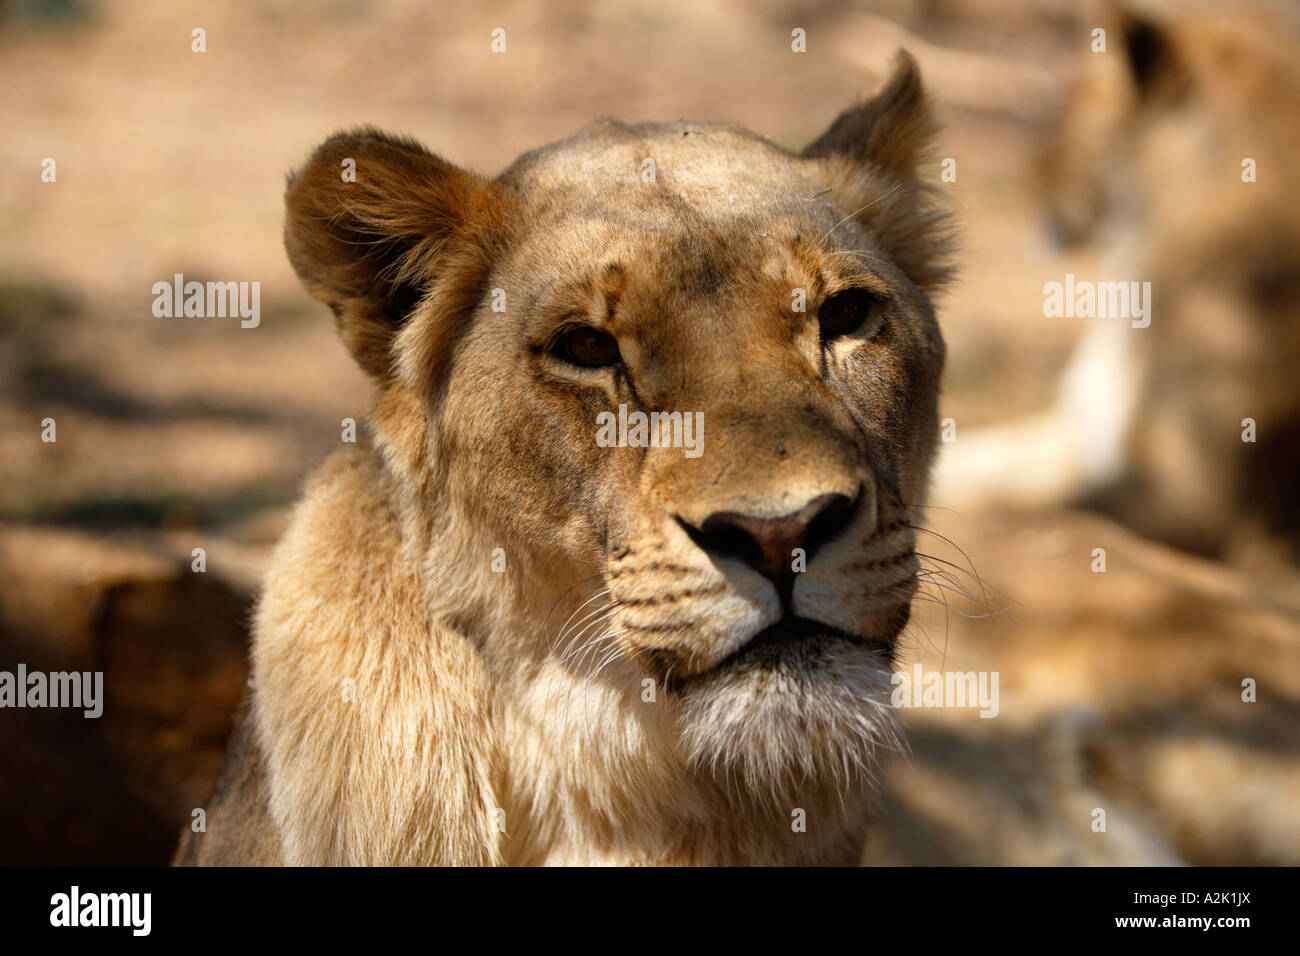 Lioness, Panthera leo krugeri. South Africa. - Stock Image